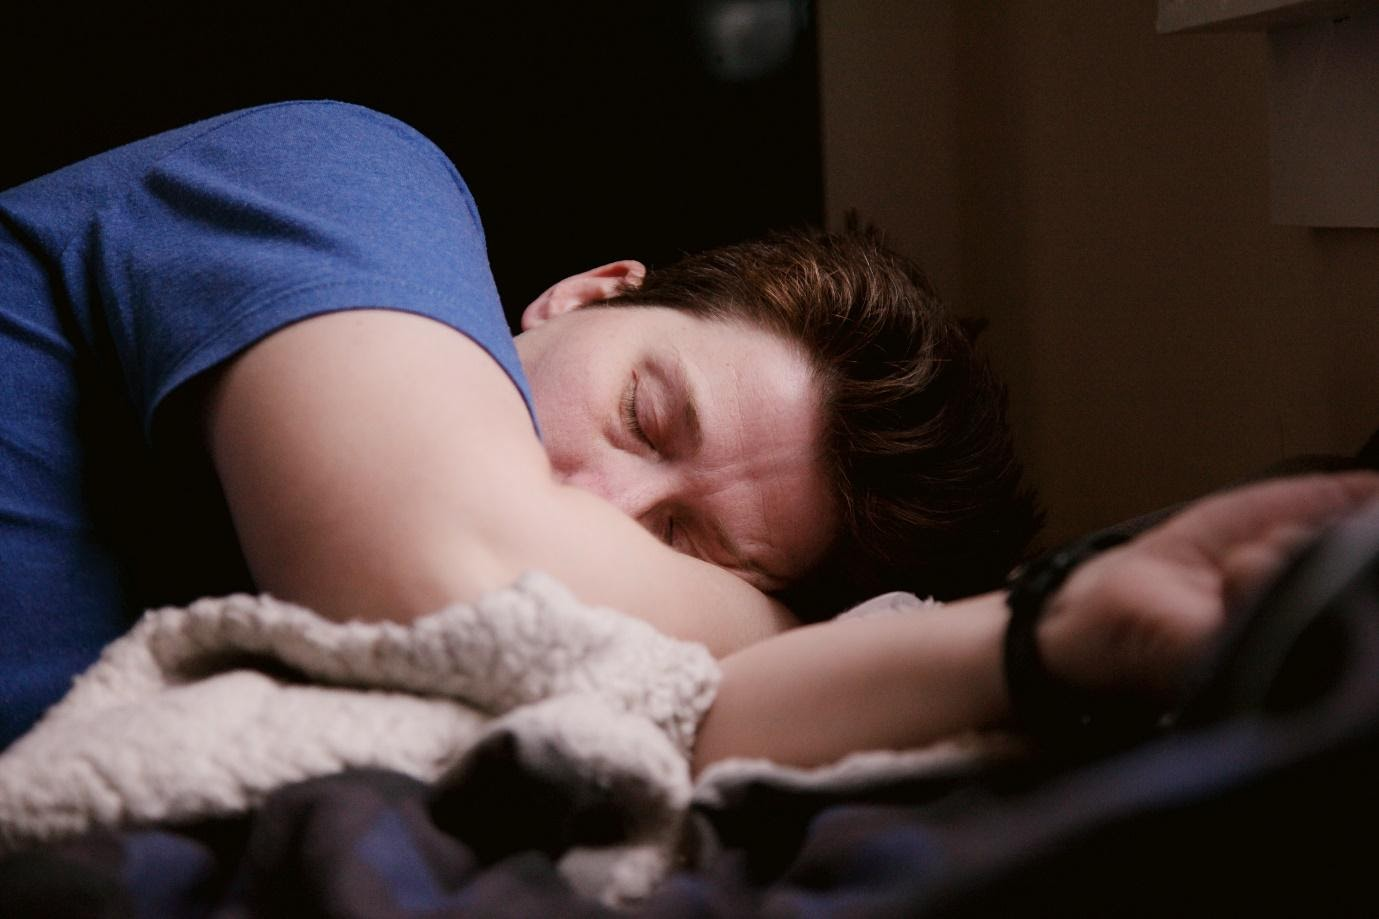 A person sleeping on a bed  Description automatically generated with medium confidence